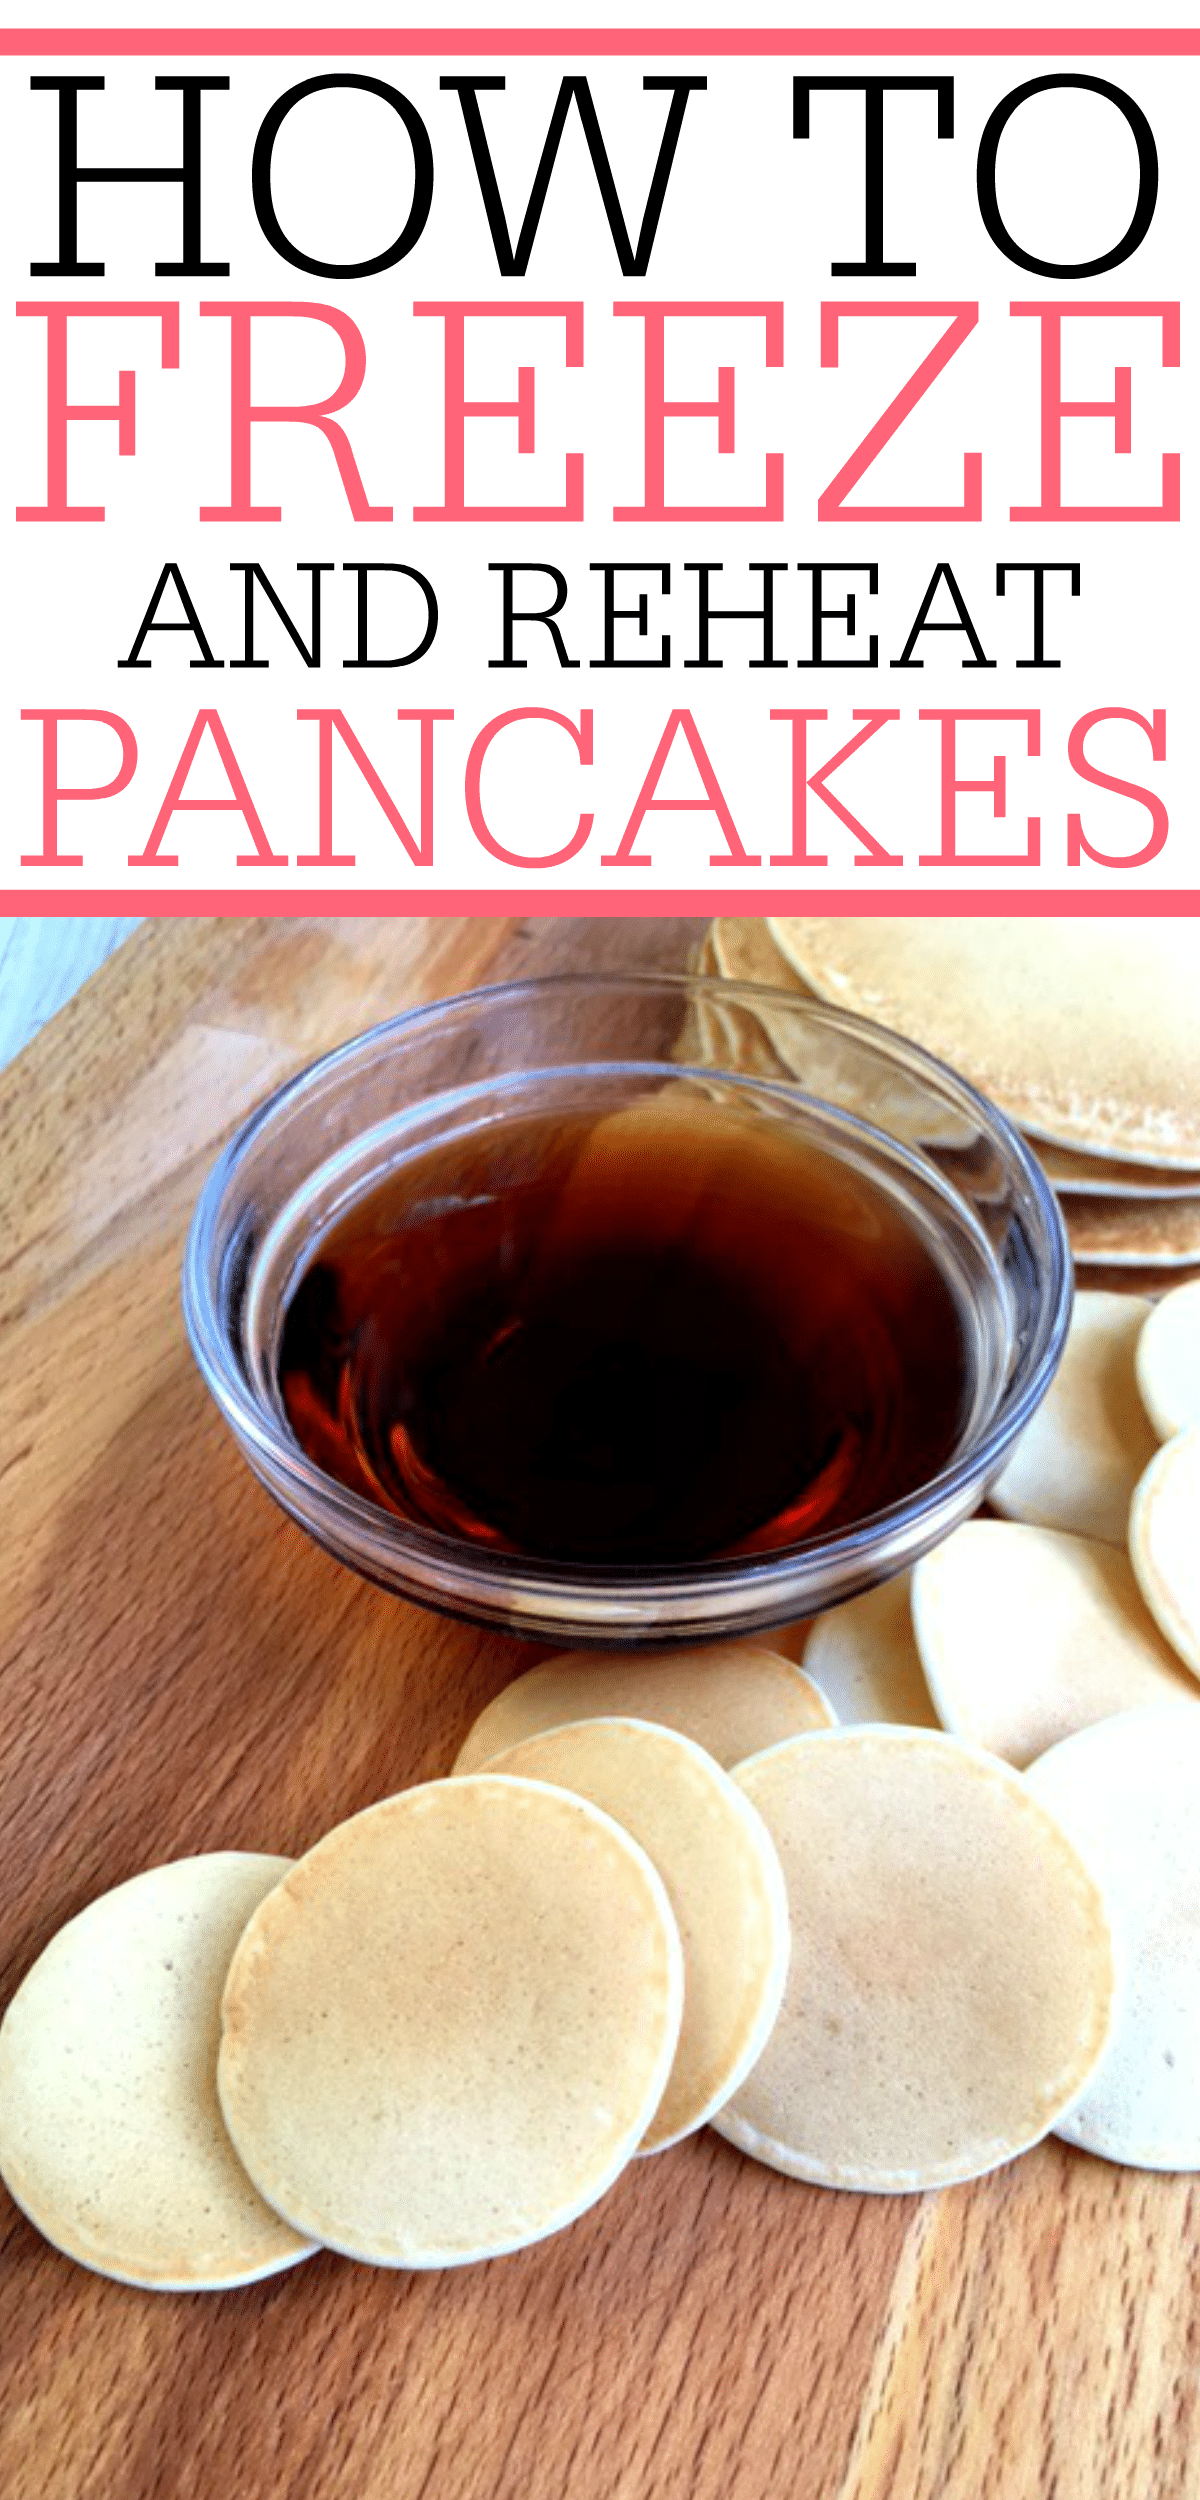 Looking for an easy breakfast for the kids? Try these tips for freezing pancakes. You can reheat them in the microwave and have the kids out the door quick.